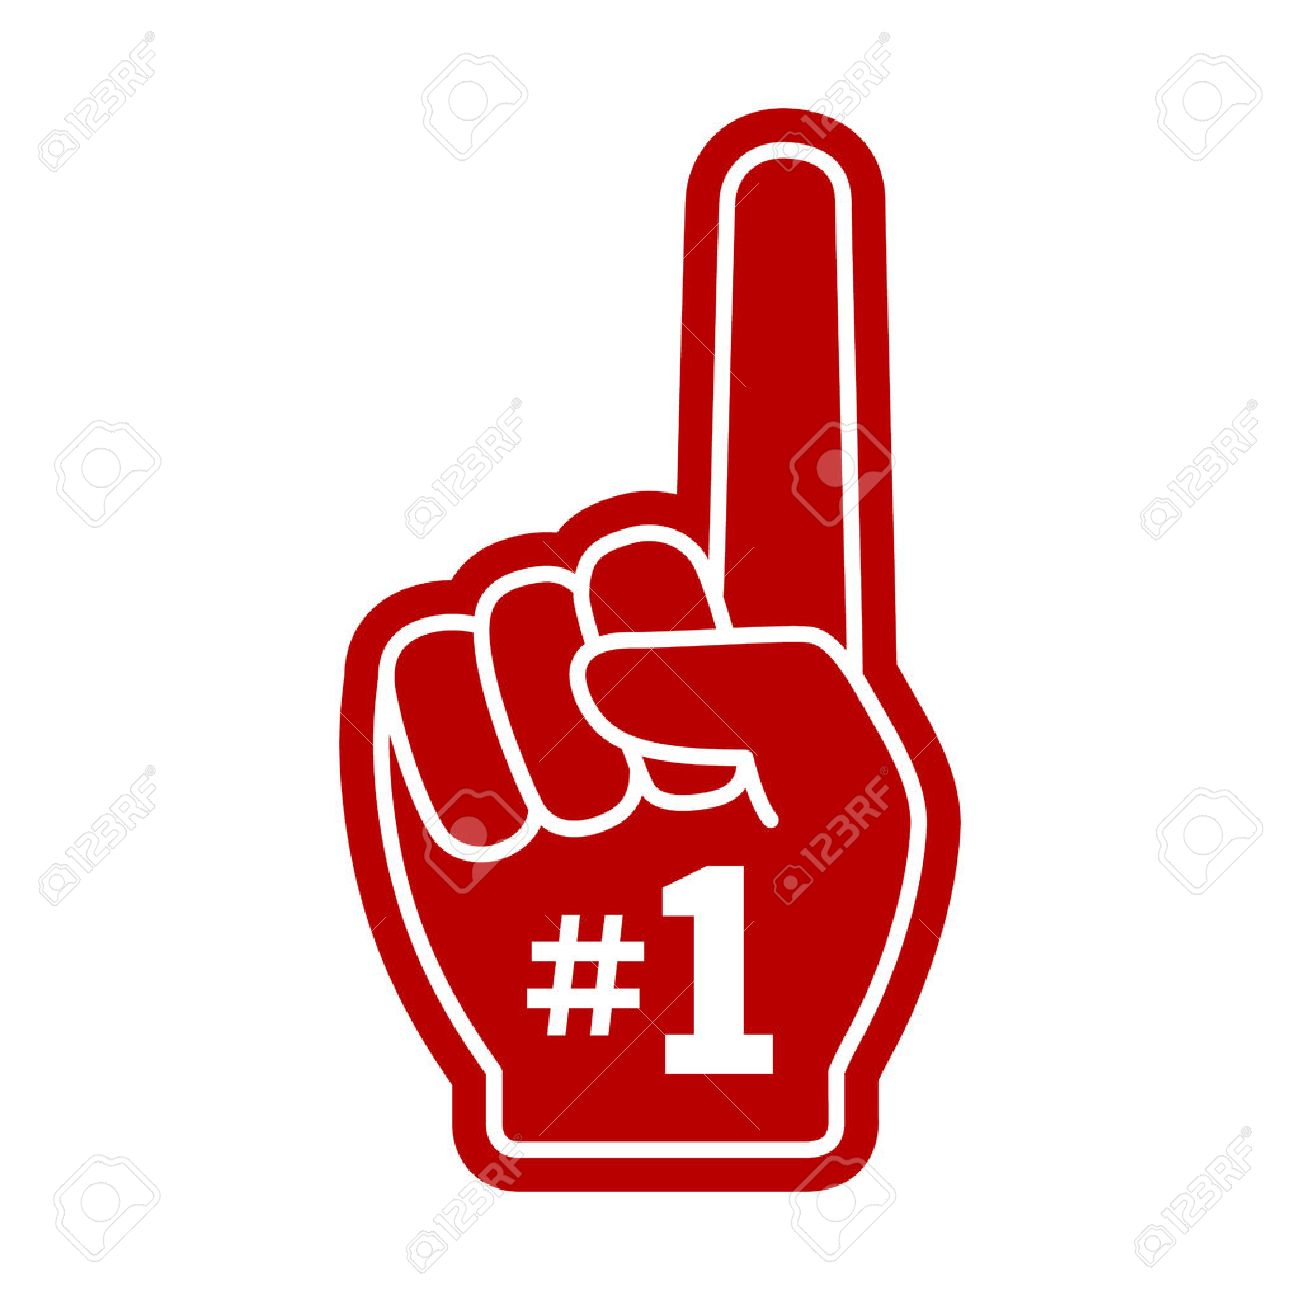 Red number cliparts free. 1 clipart foam finger